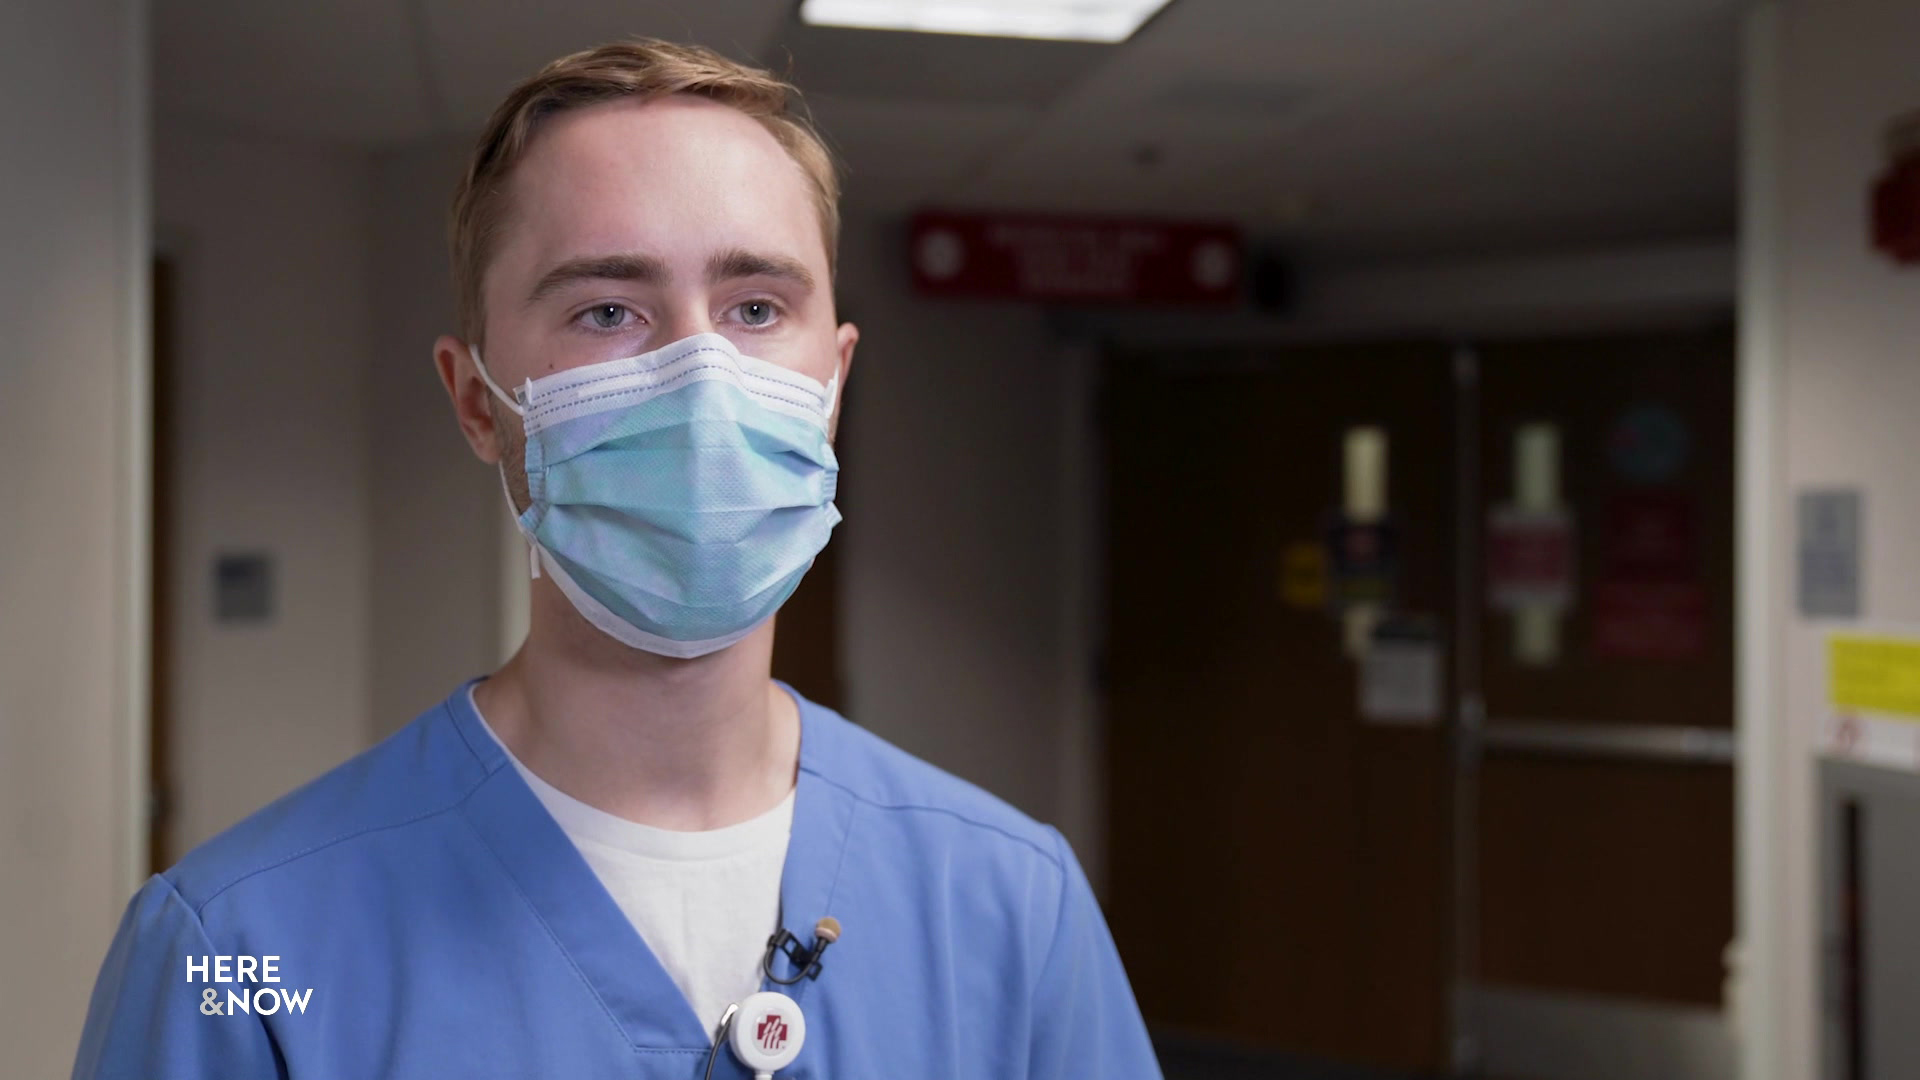 Ryan Letsch wears a mask while standing in a hospital hallway.